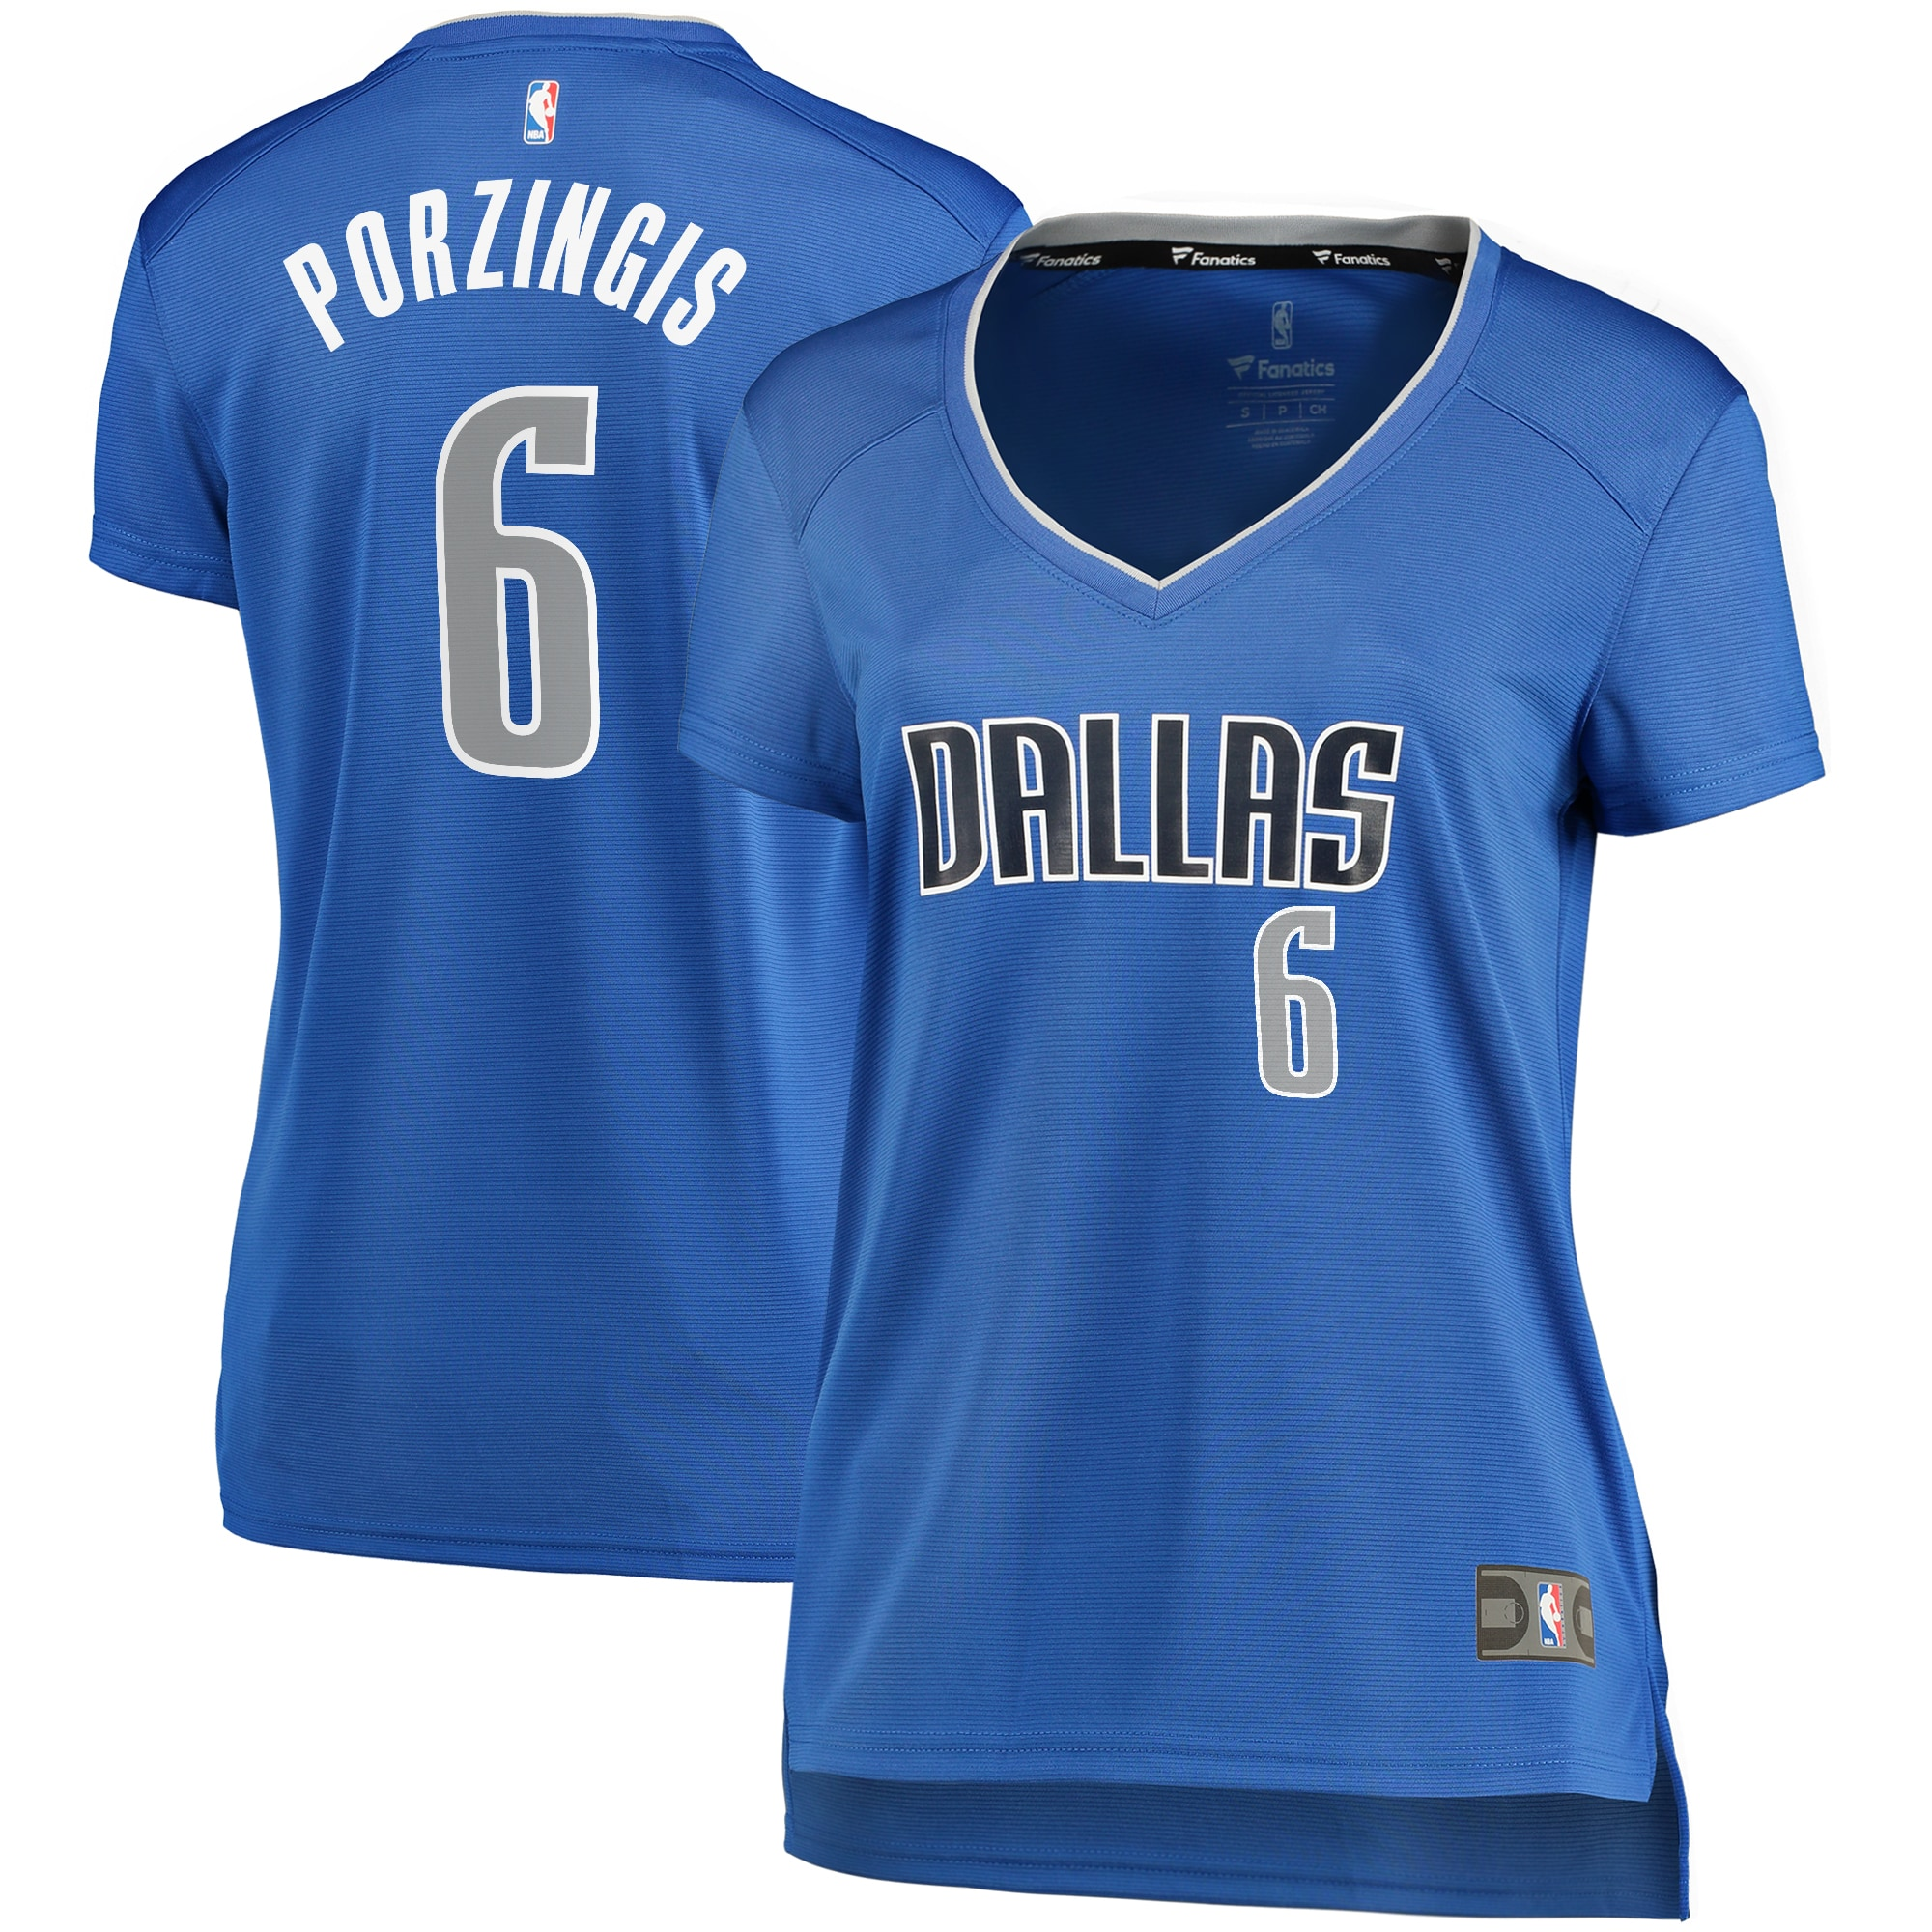 Kristaps Porzingis Dallas Mavericks Fanatics Branded Women's Fast Break Player Replica Jersey - Icon Edition - Blue